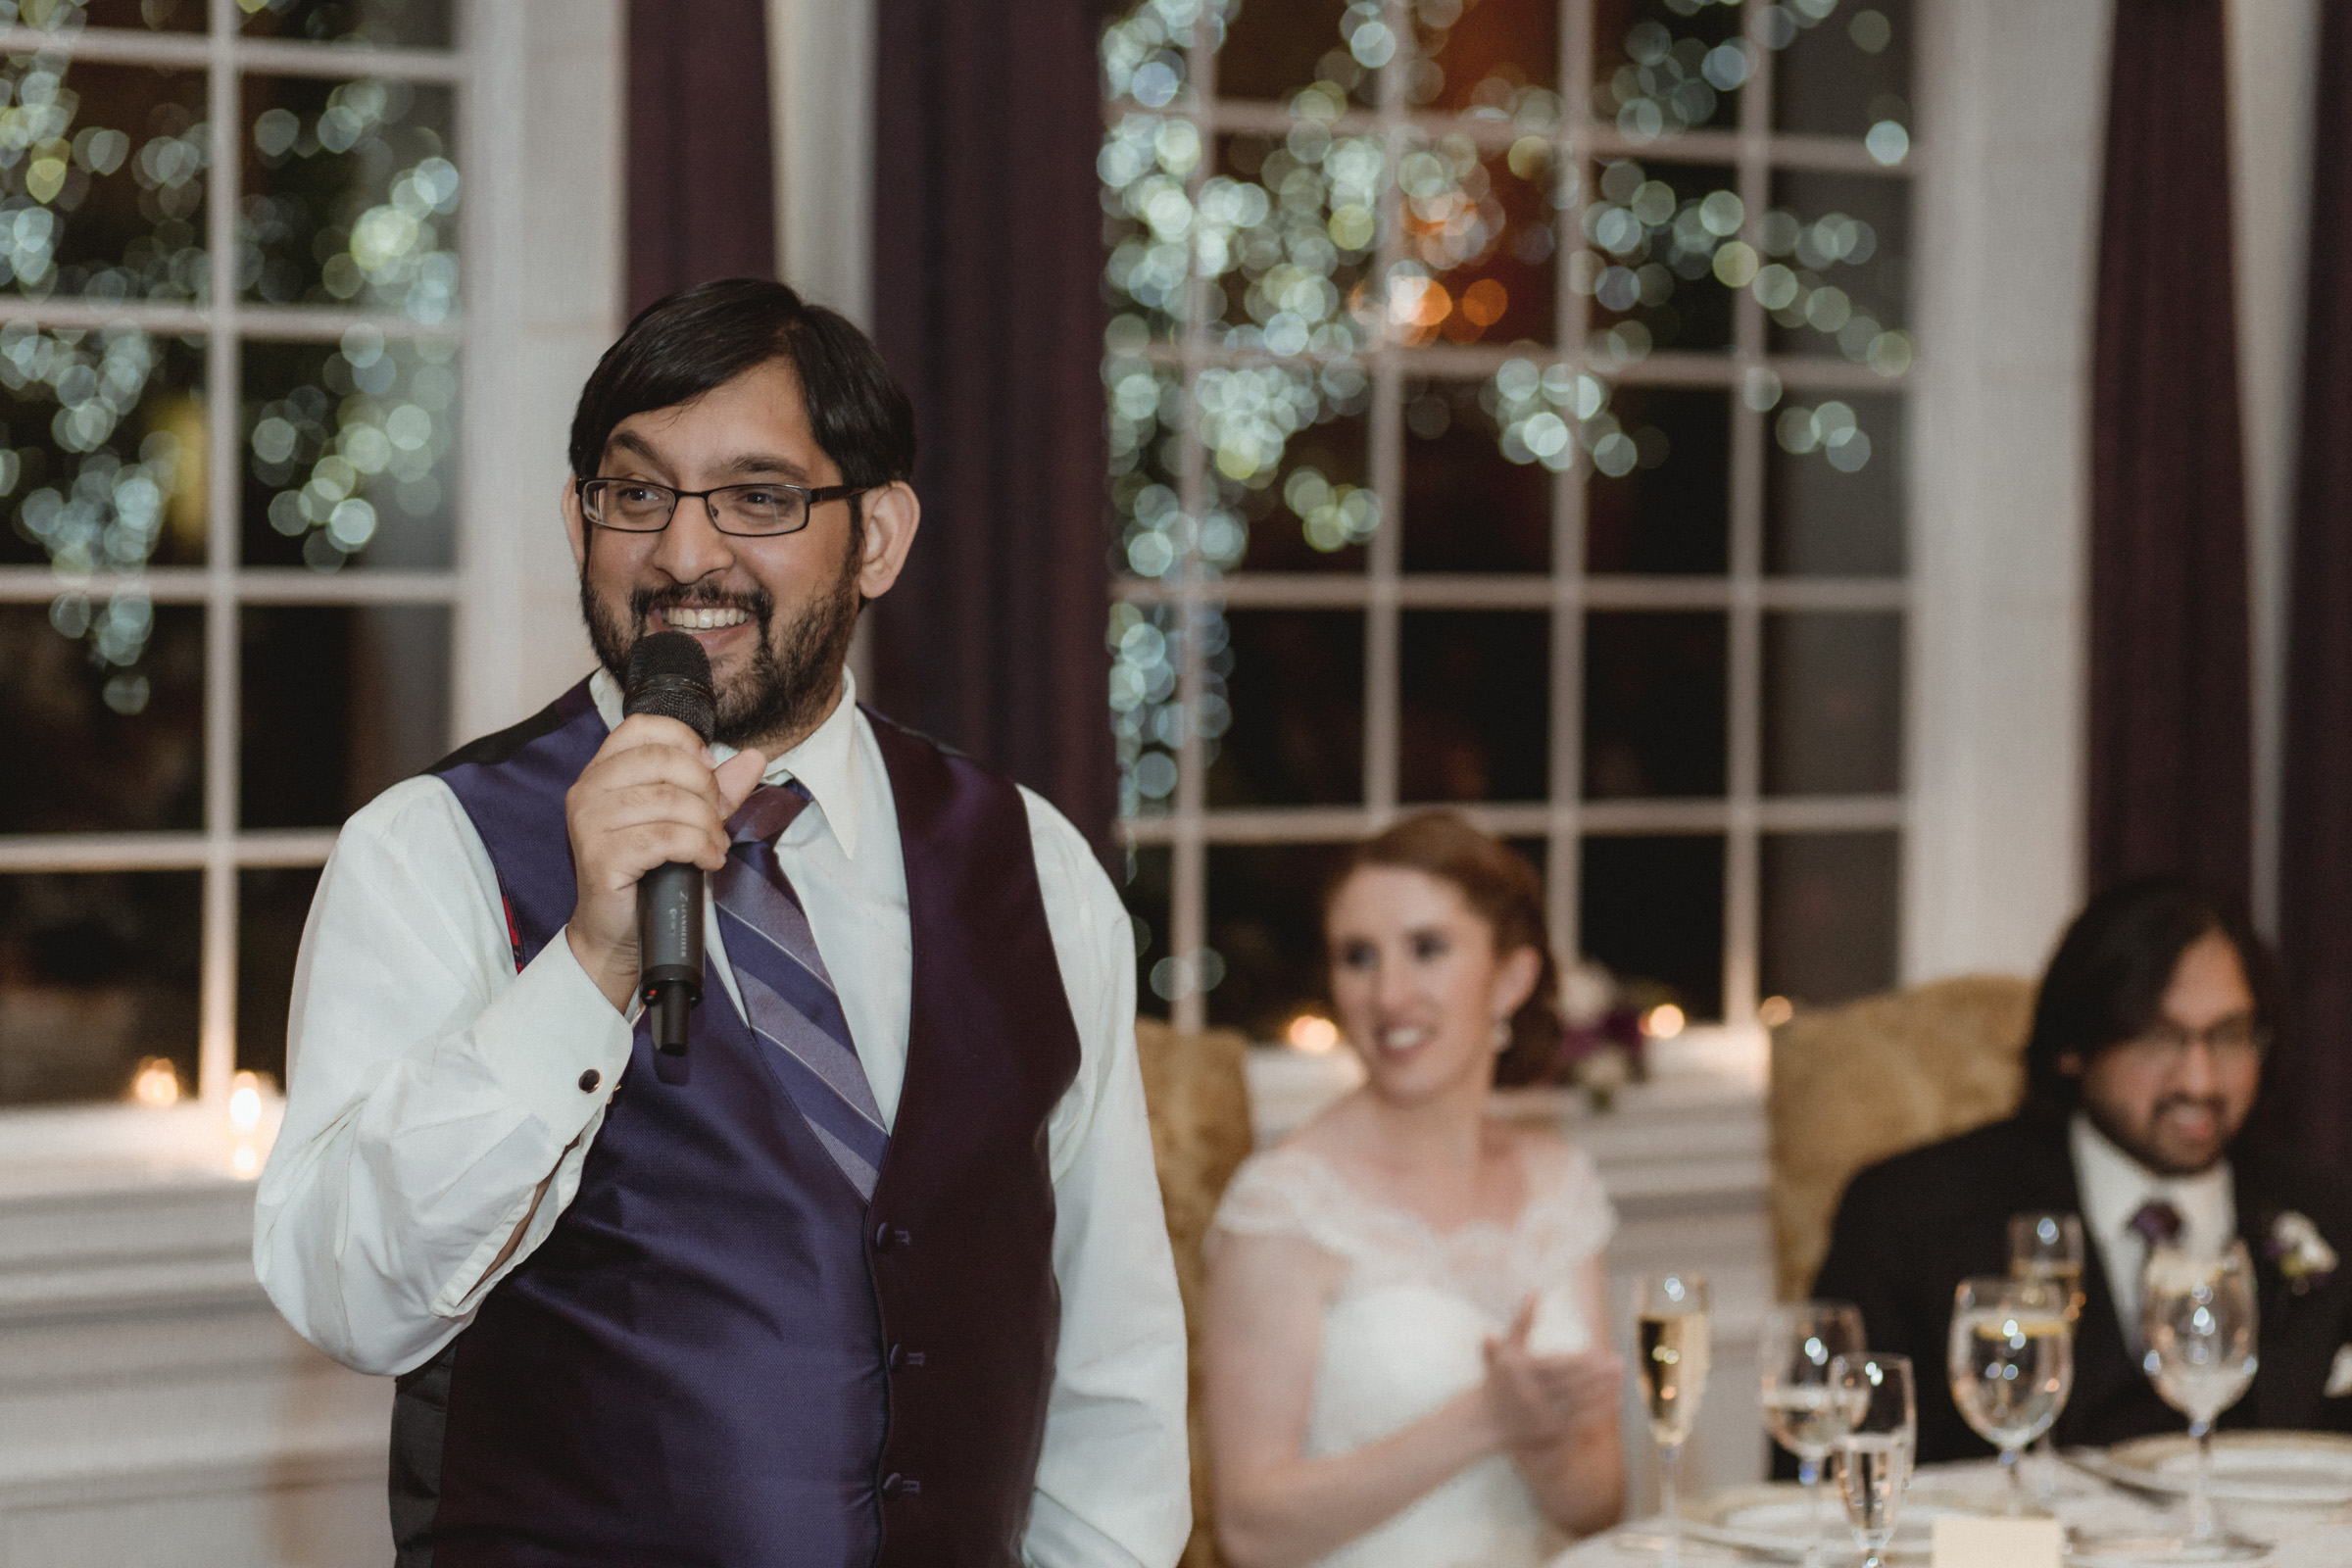 Best man gives his speech - Estate at Florentine Gardens wedding - Hudson Valley Wedding - Kelsey & Anish's wedding - Amy Sims Photography